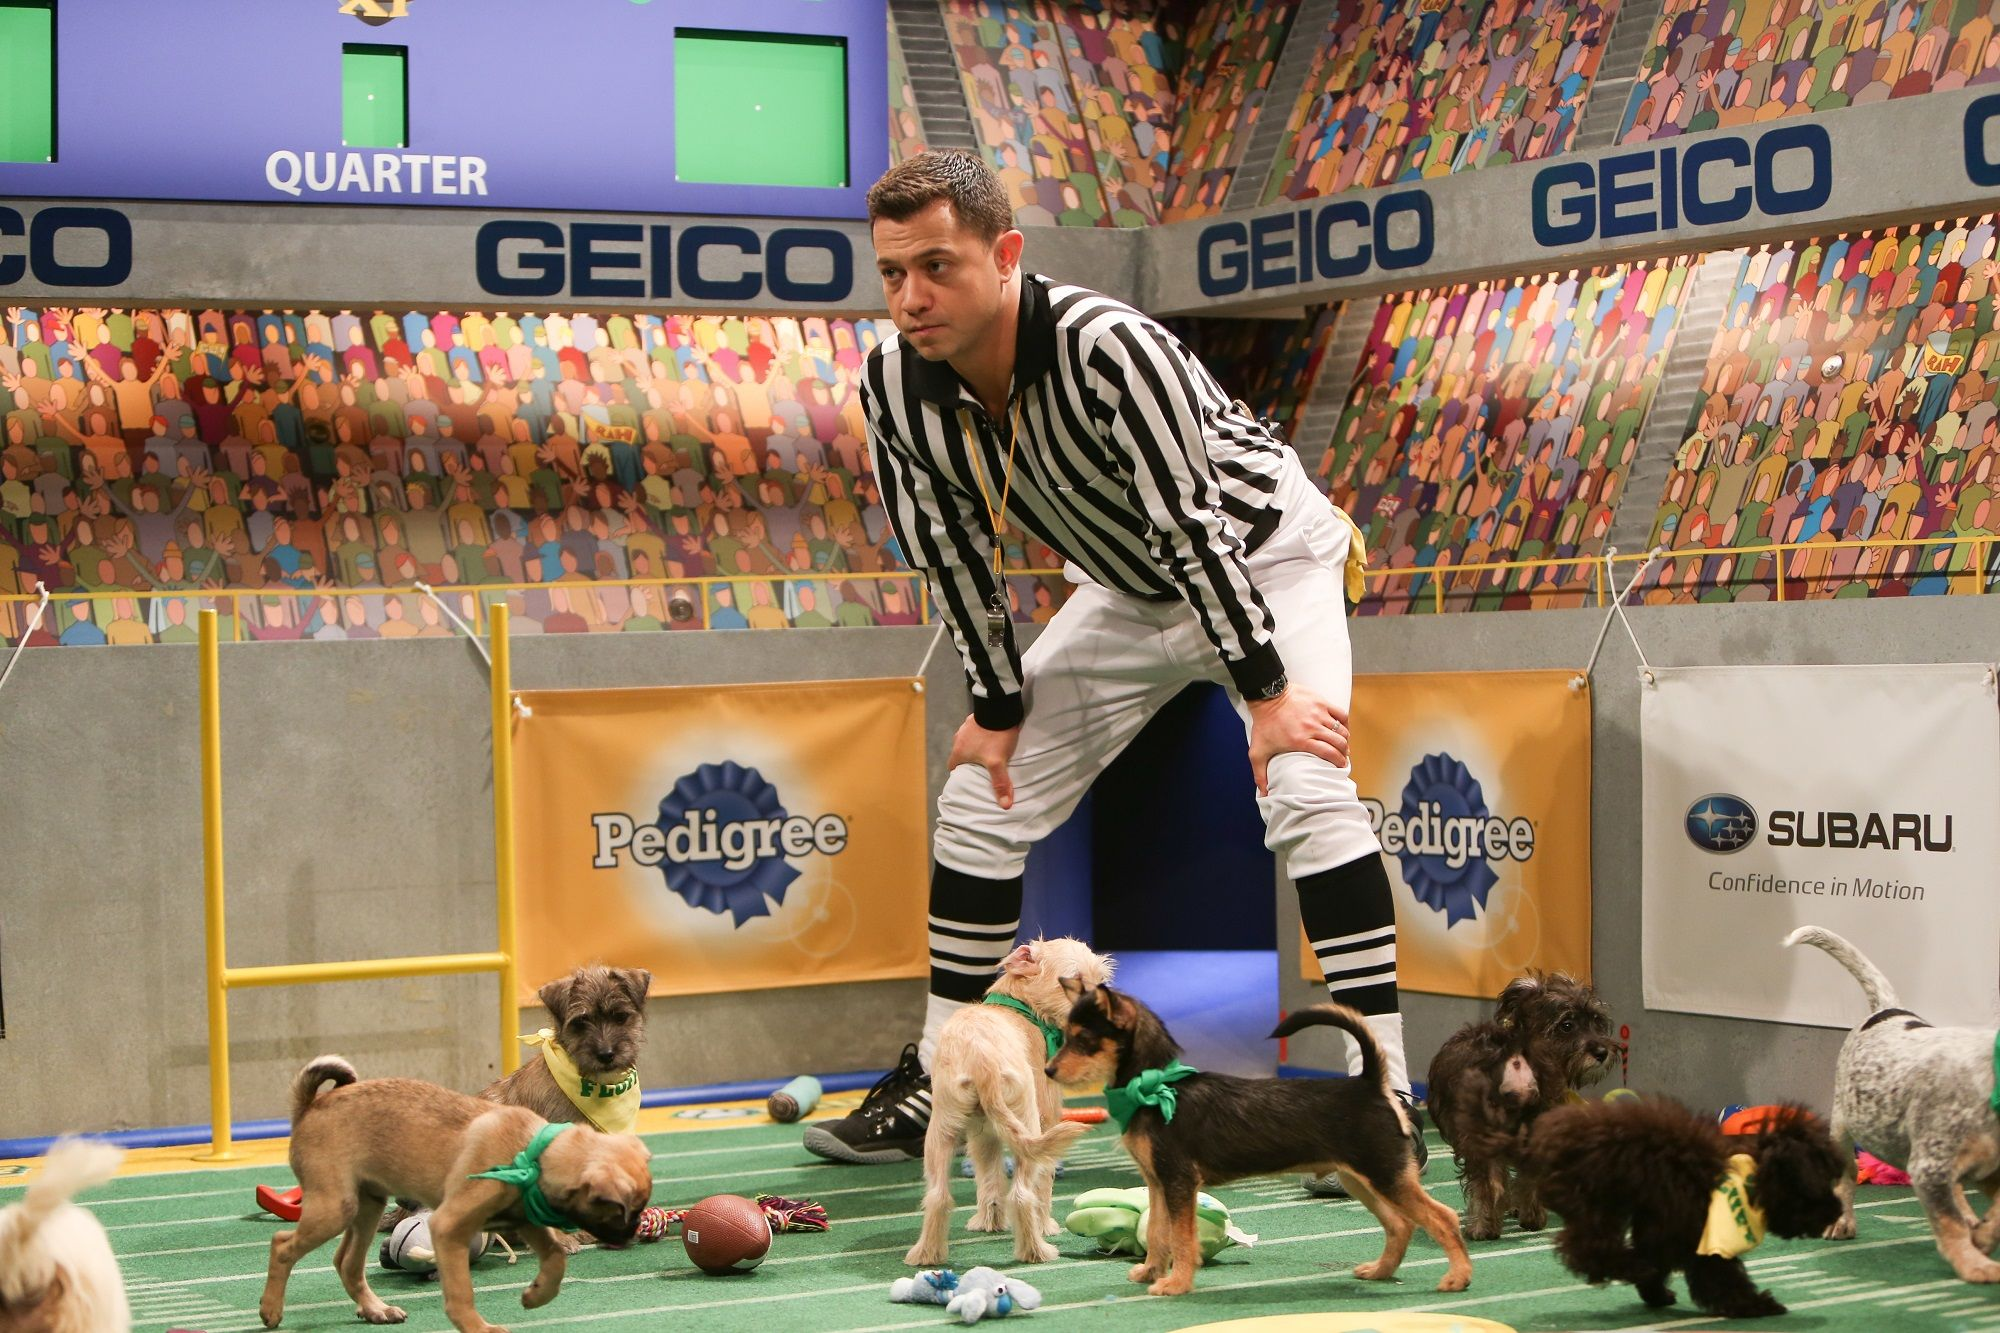 A complete guide to puppy bowl xi puppy bowls dog